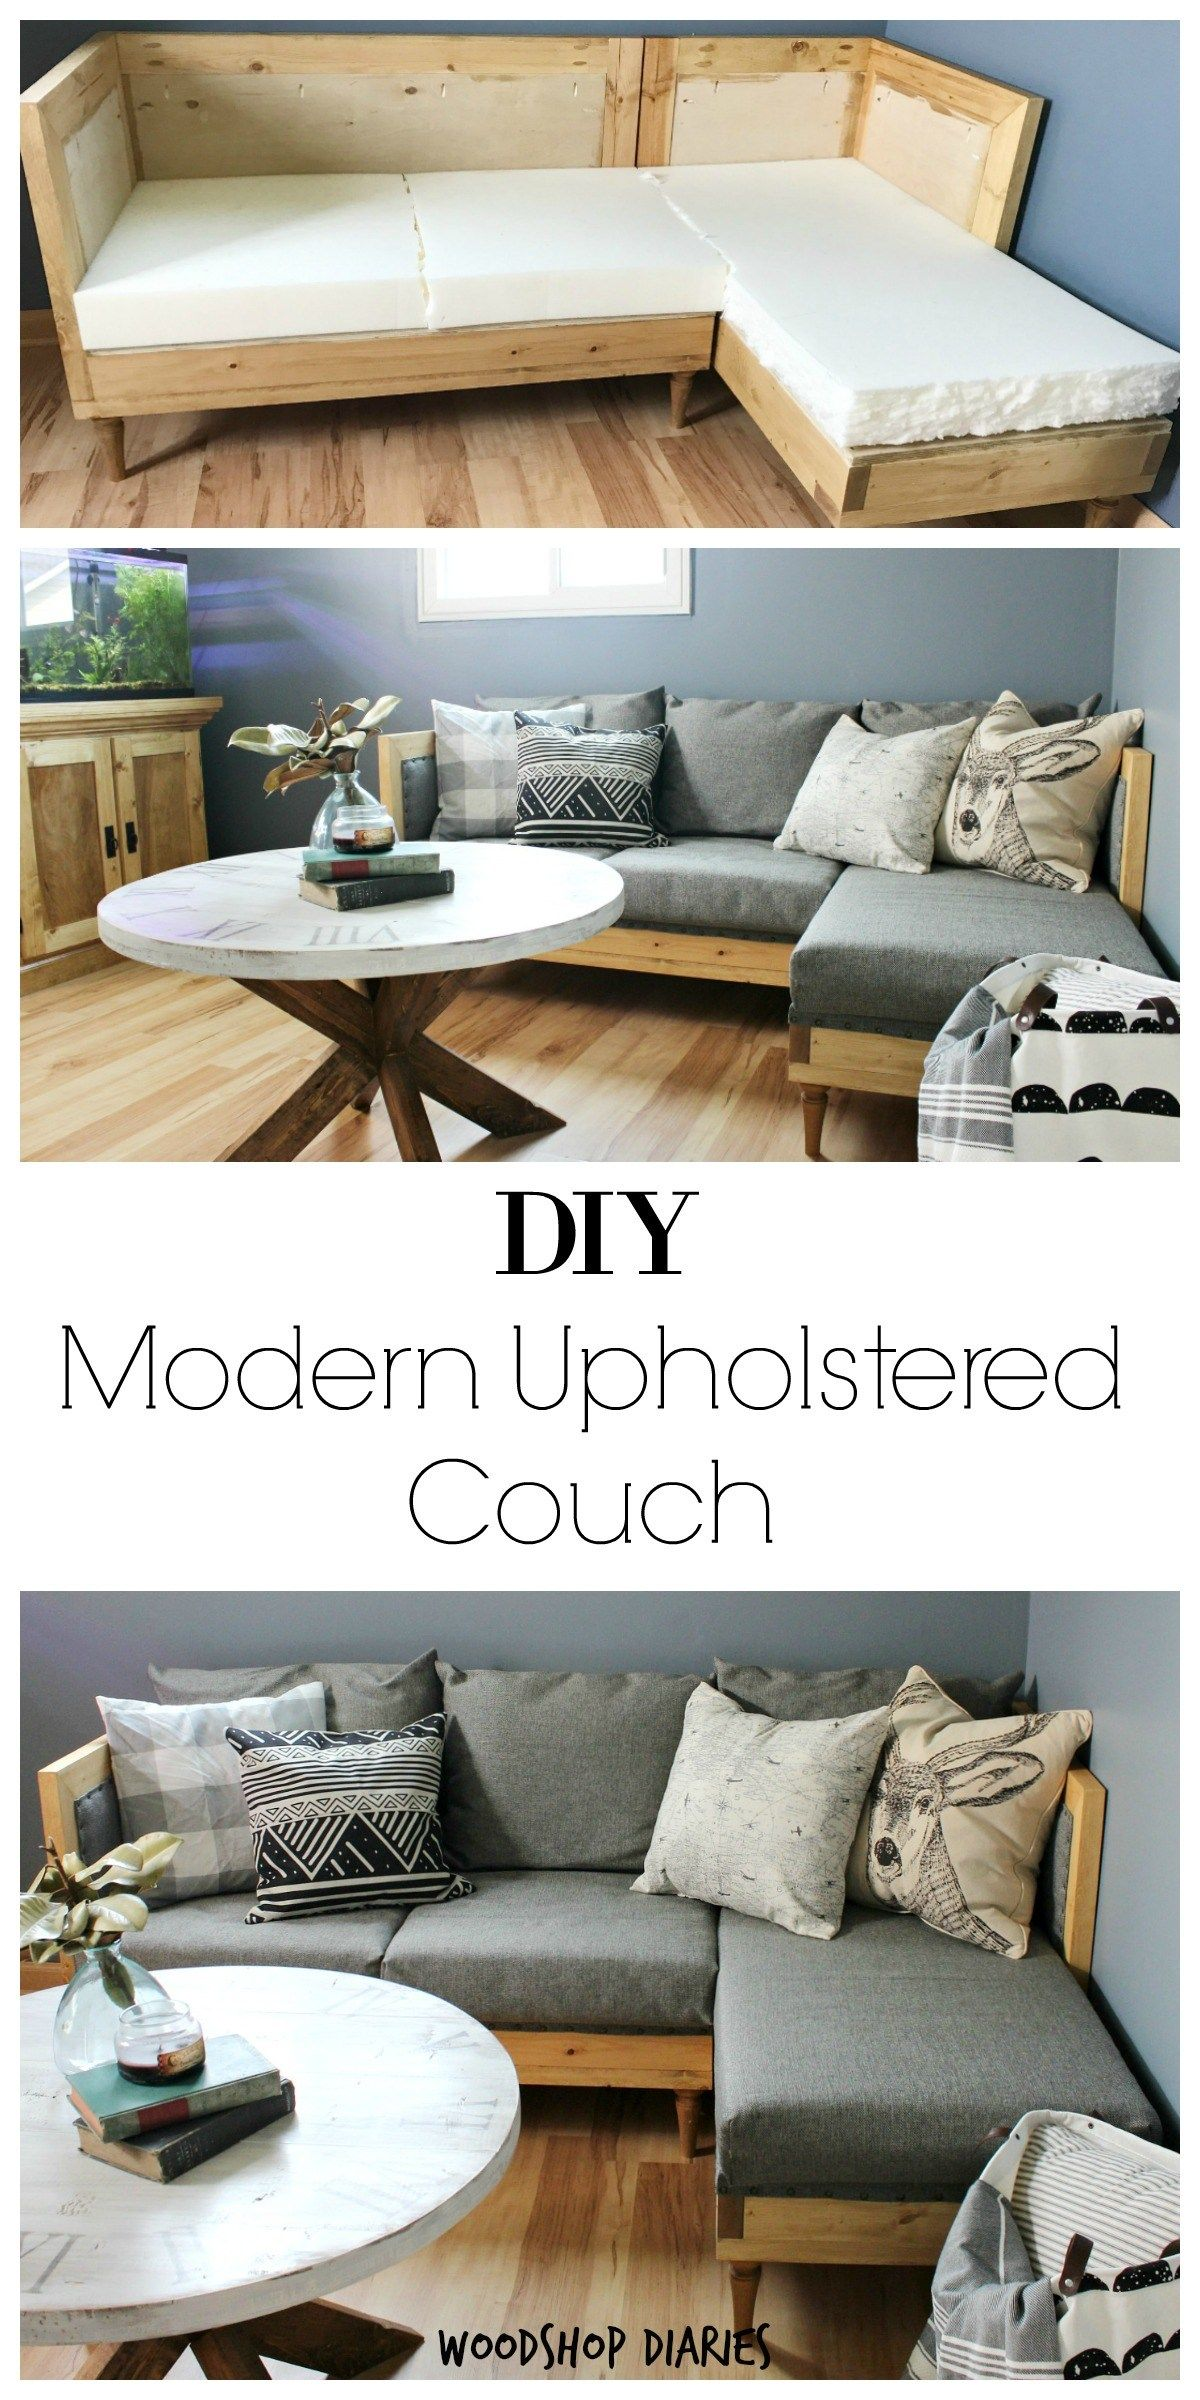 Upholstery Couch Diy Build Your Own Diy Upholstered Couch Diy Interests Diy